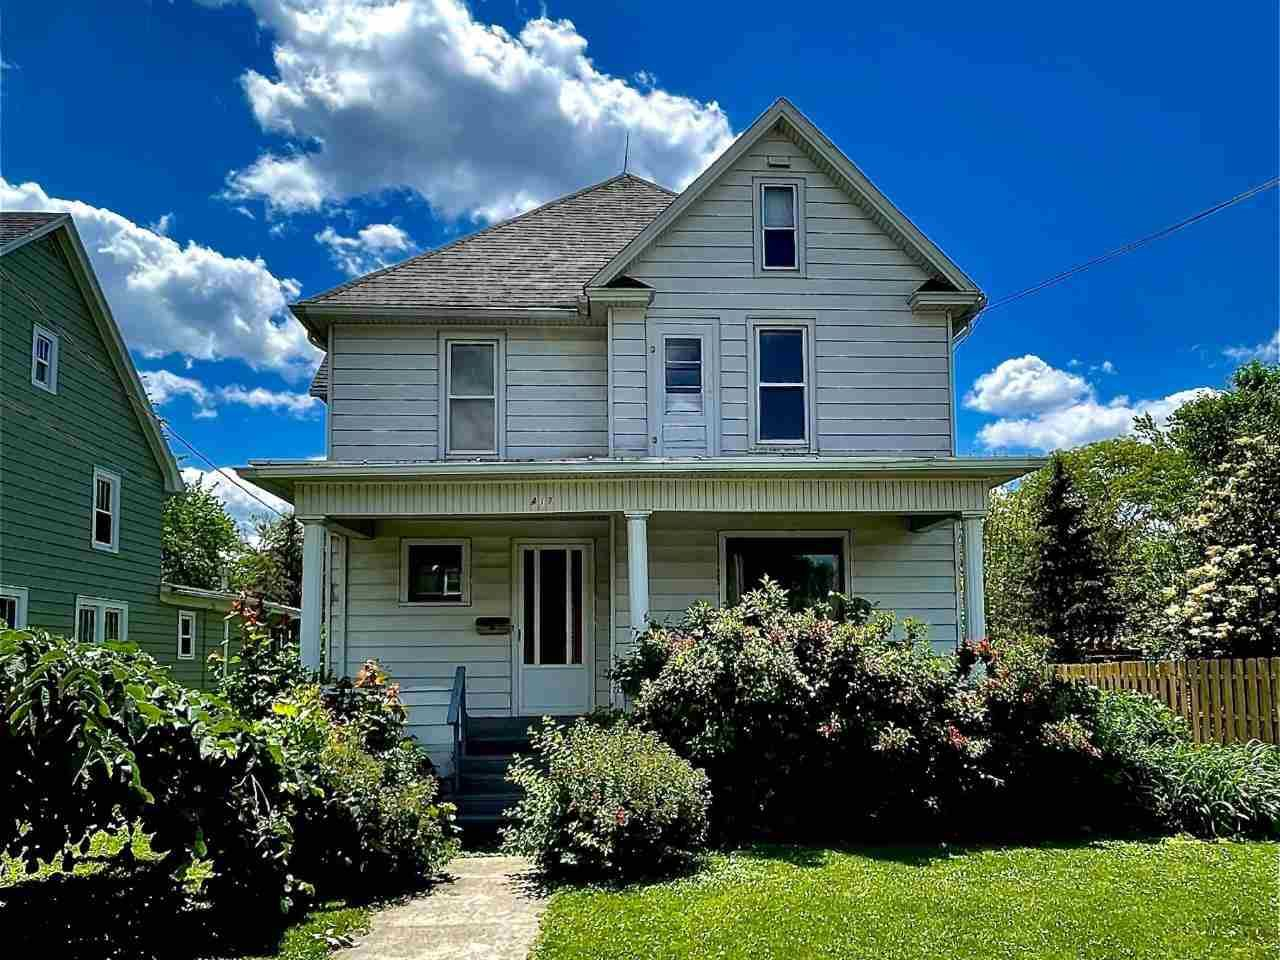 417 Haskell St, Beaver Dam, WI 53916 - #: 1910515